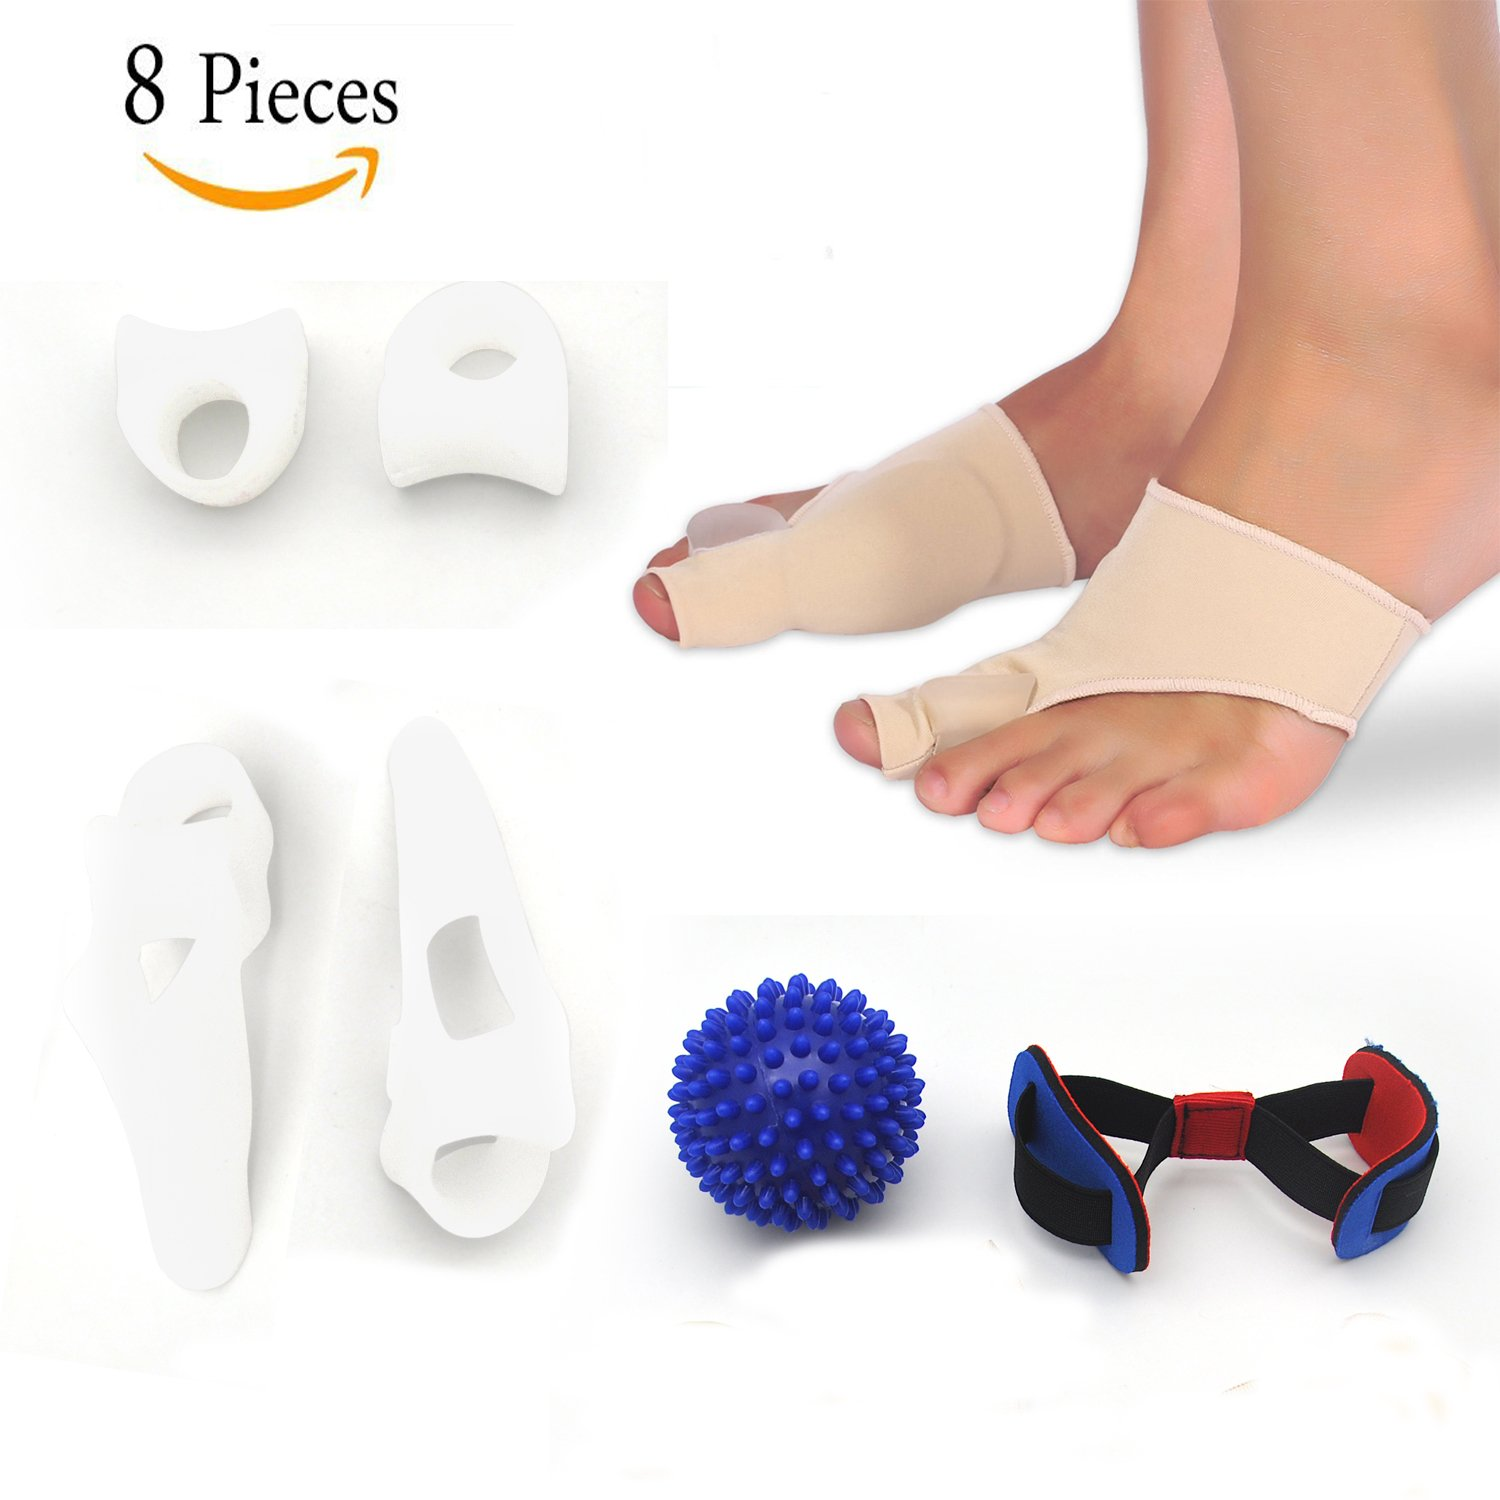 Bunion Corrector Pads Kit Bunion Protector Toe Spreader Bunion Relief Socks Sleeves Toe Stretcher & Separator,Foot Massage Ball for Tailors Bunion,Hallux Valgus,Overlapping Toes,Big Toe Joint